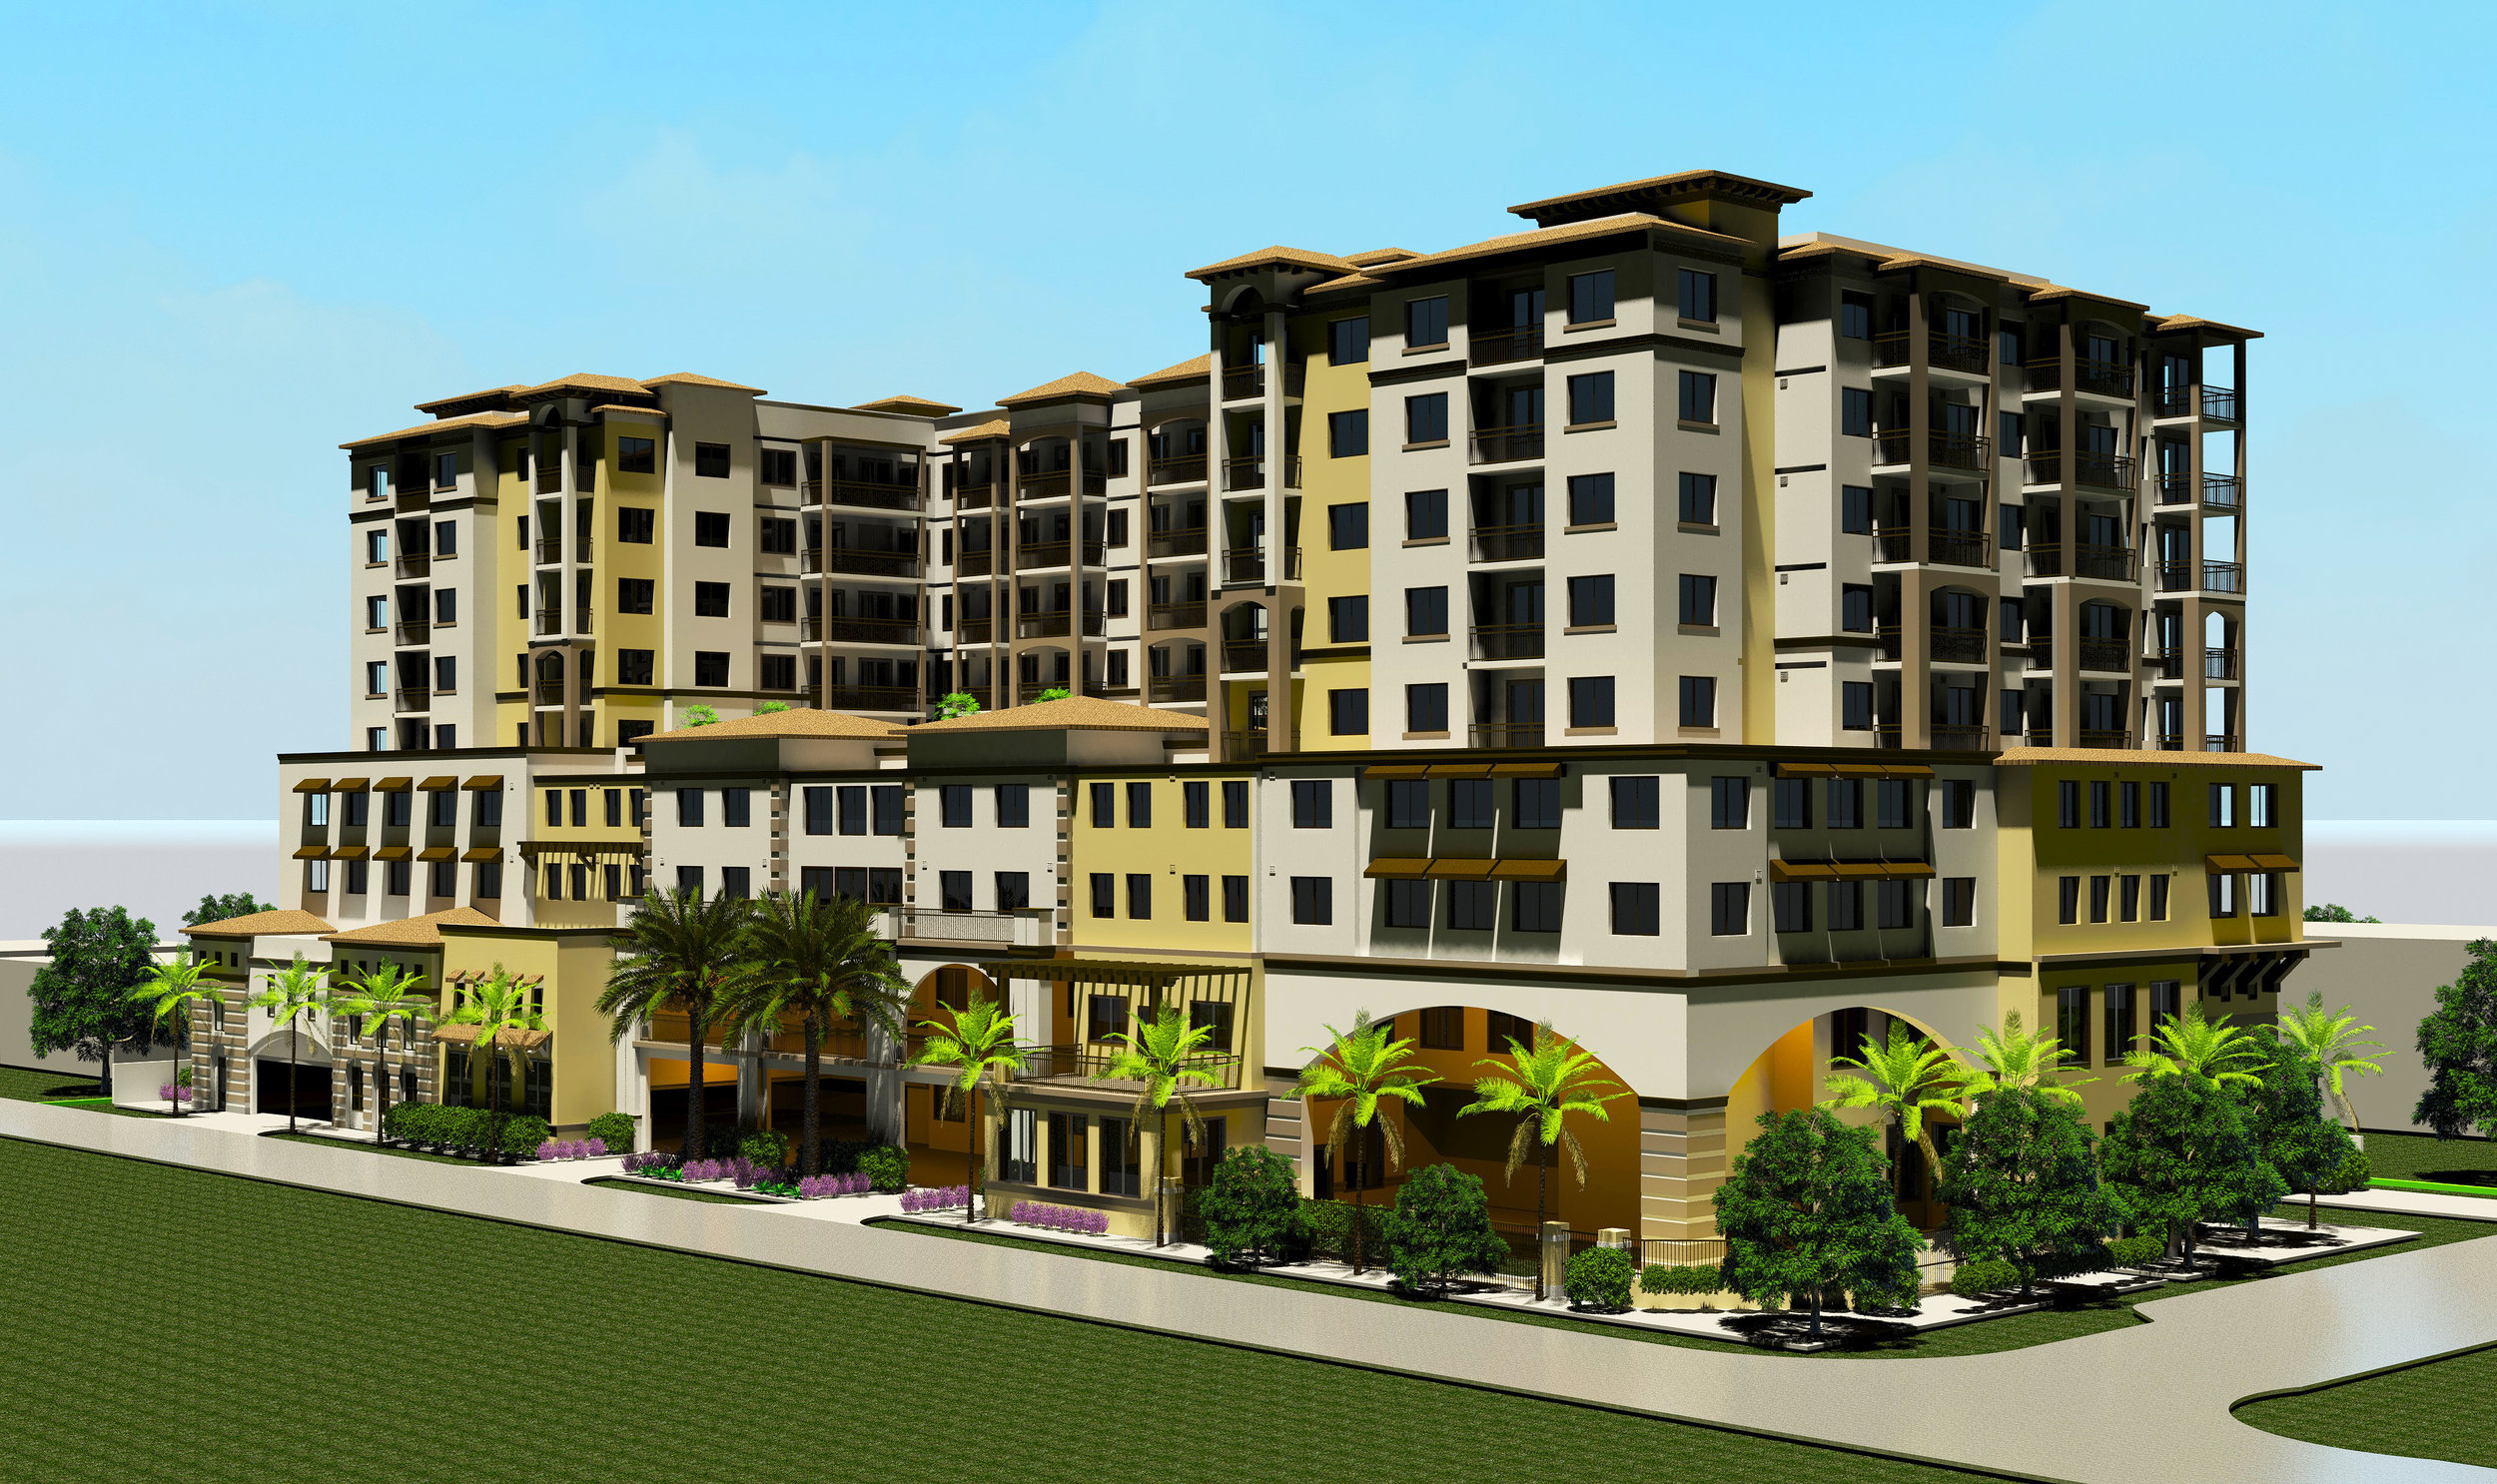 Royal Palm Assisted Living Facility